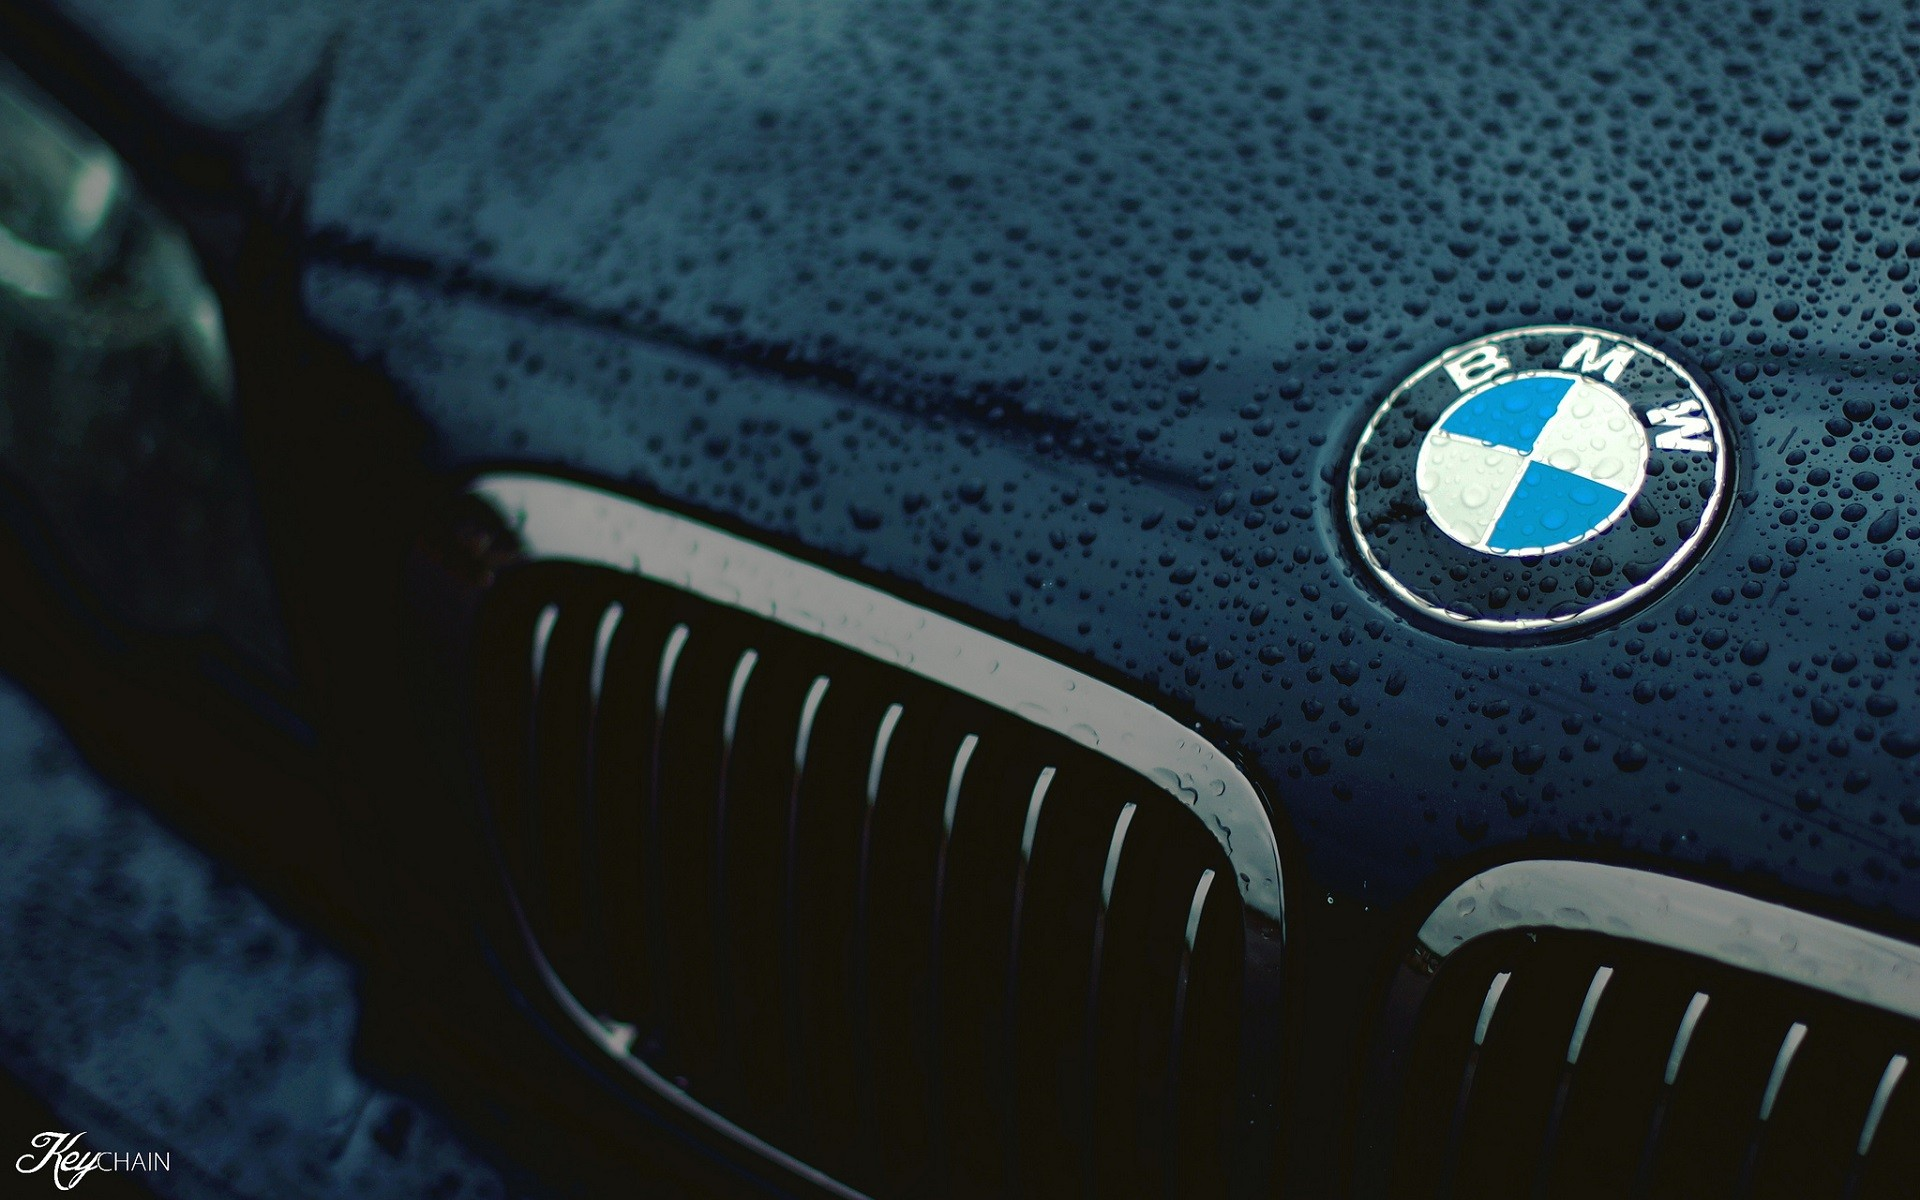 Cars Movie Hd Wallpapers 1080p Car Bmw Closeup Logo Black Water Drops Wet